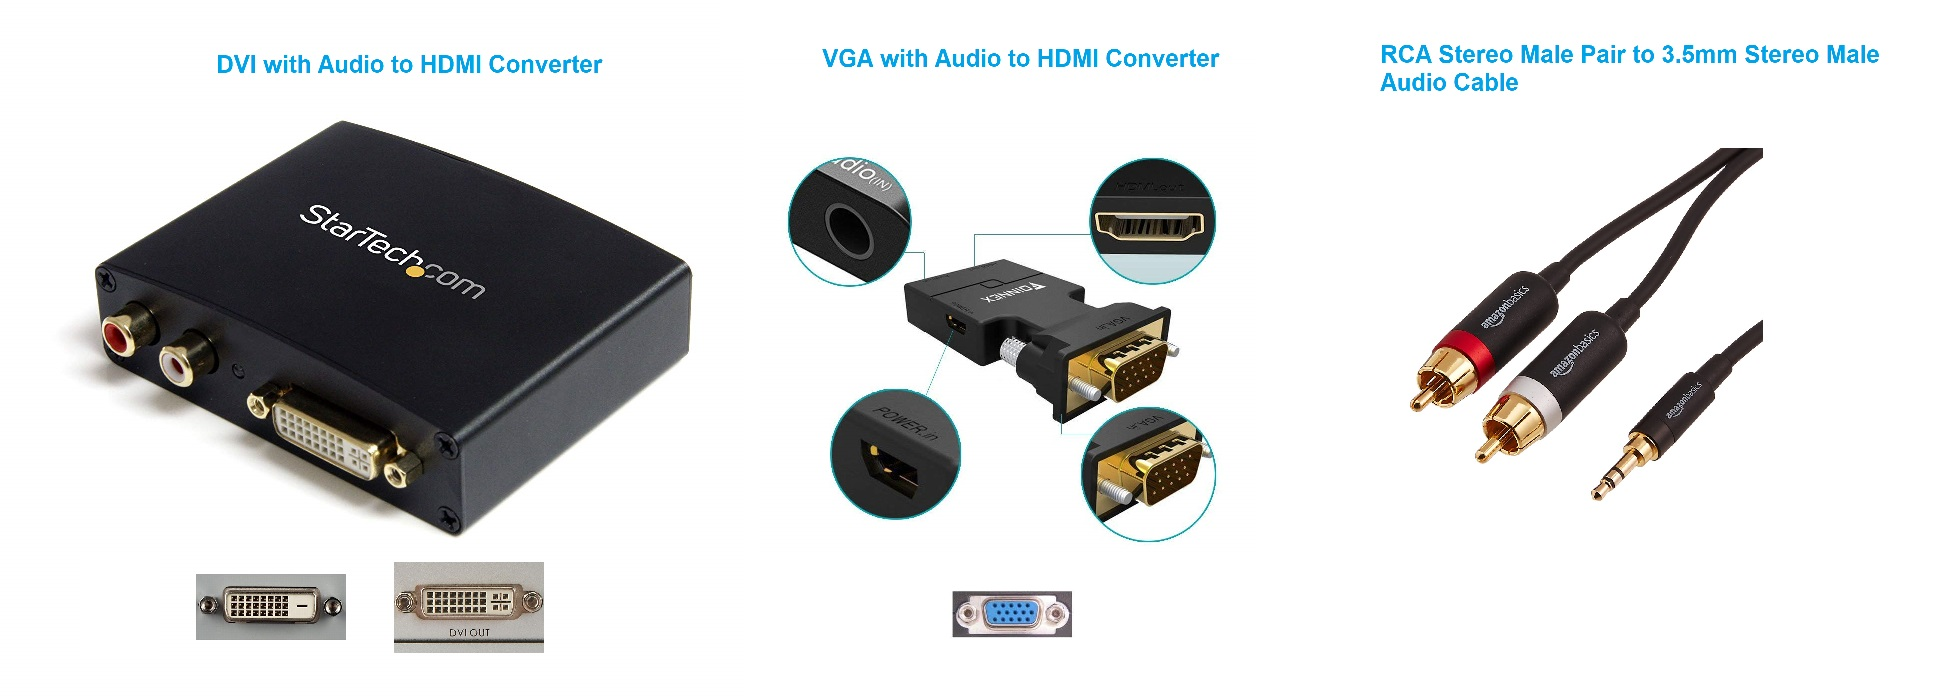 Computer VGA and DVI Video Port to HDMI Adapters with Audio